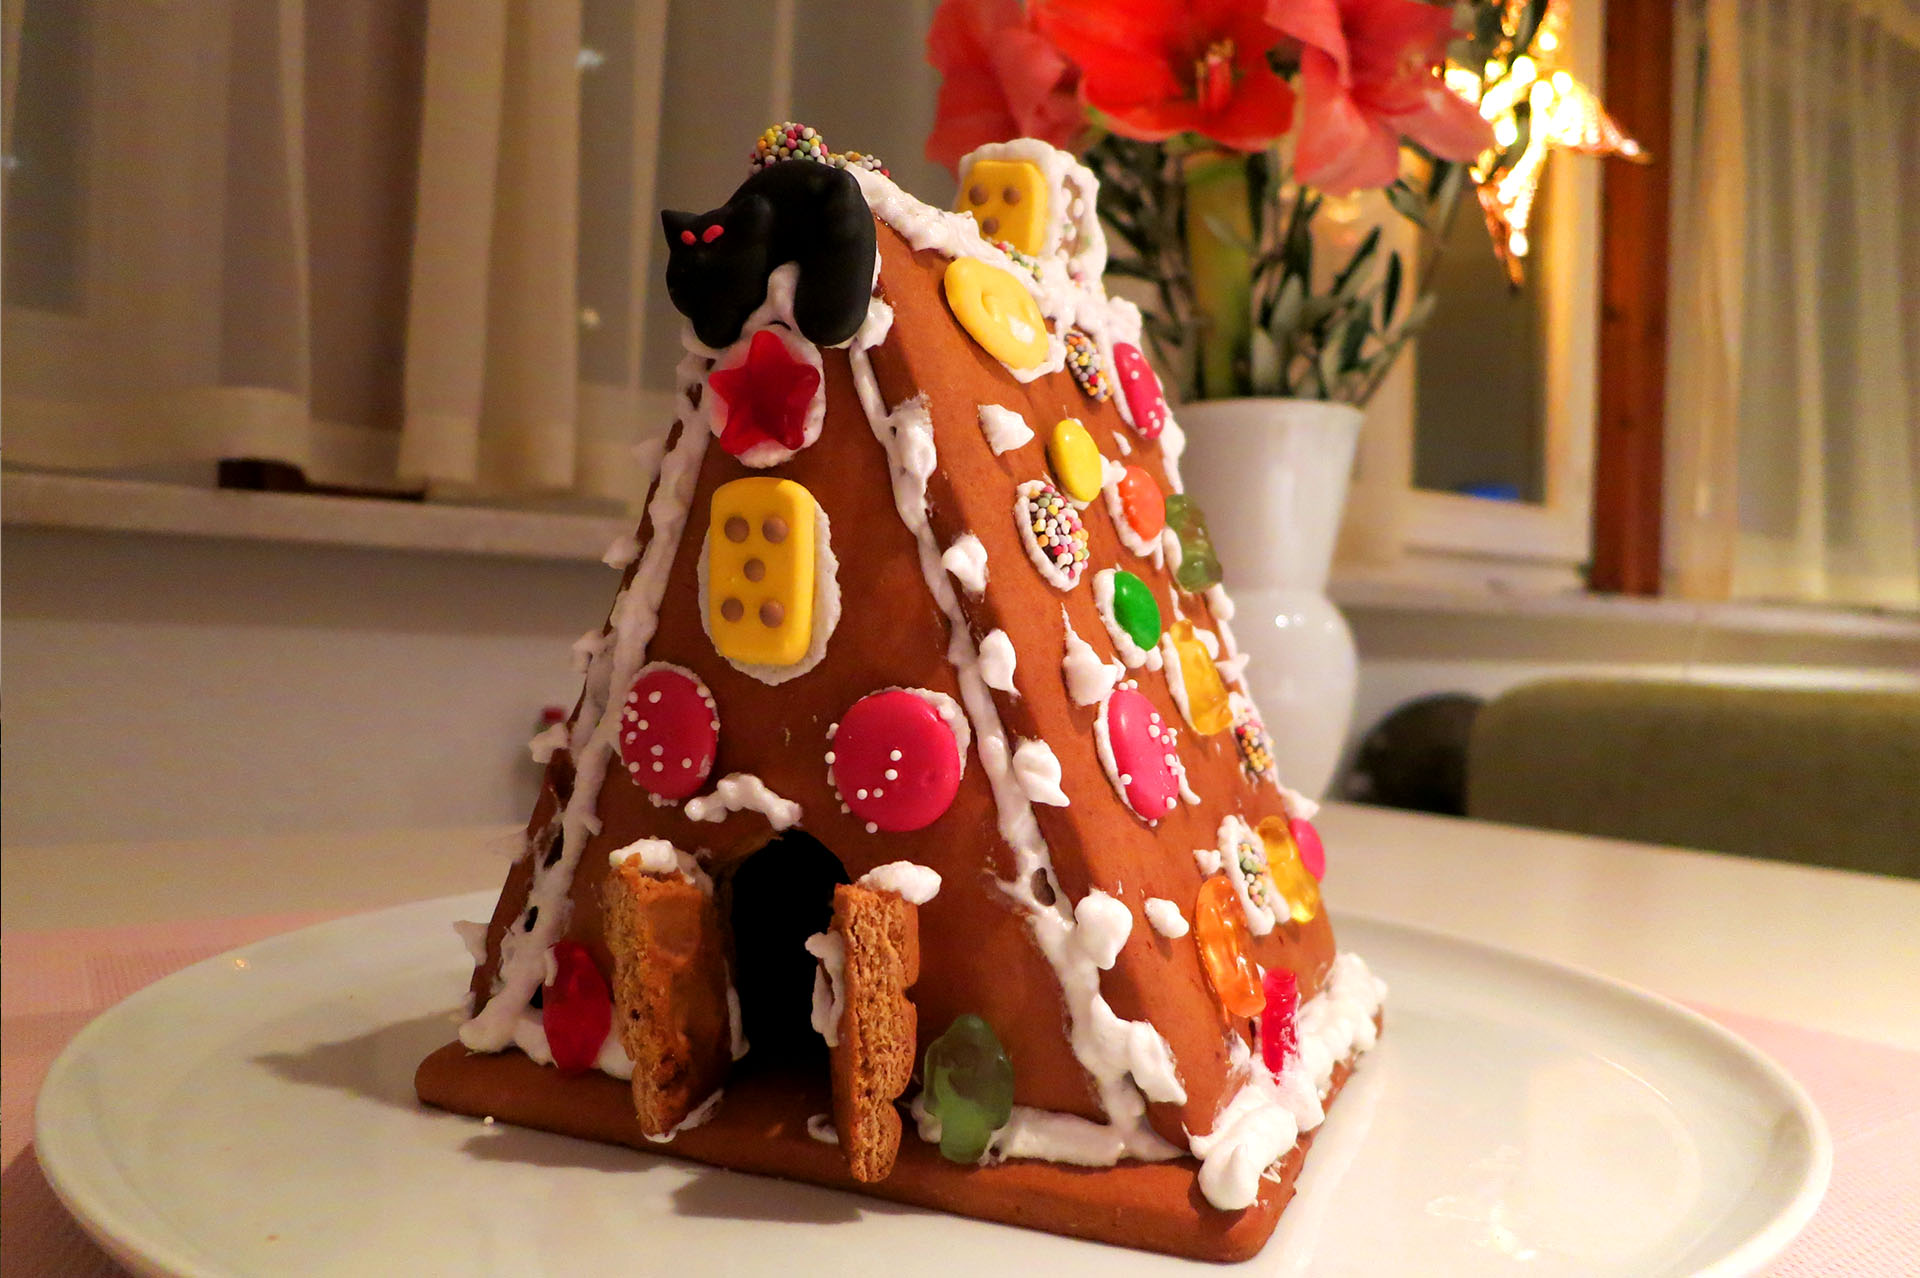 Great gingerbread house challenge in the Christmas time.